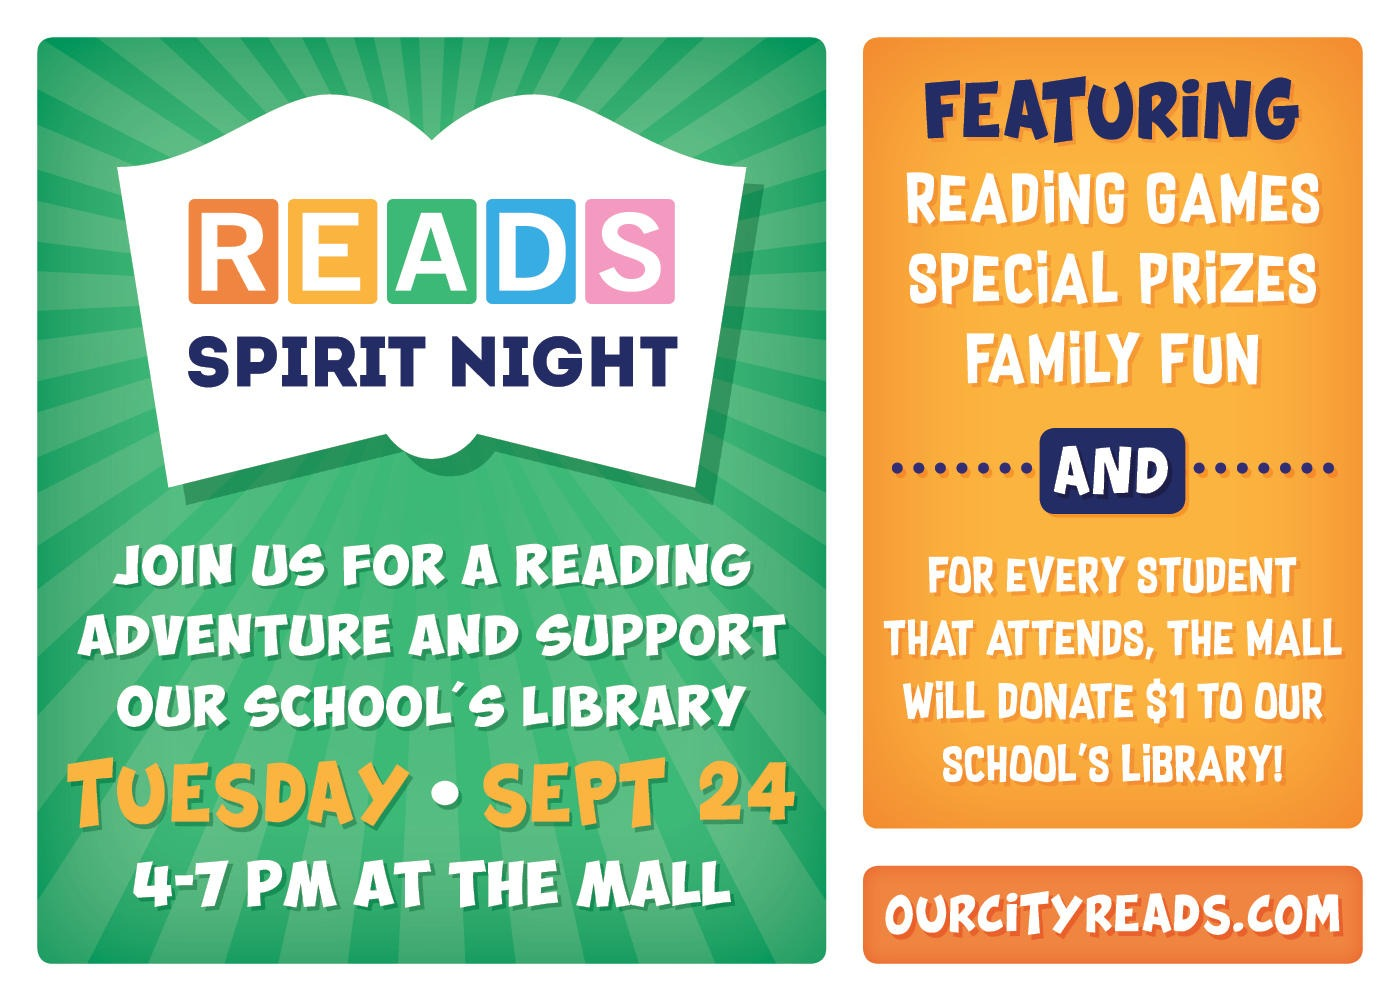 READS spirit night flyer